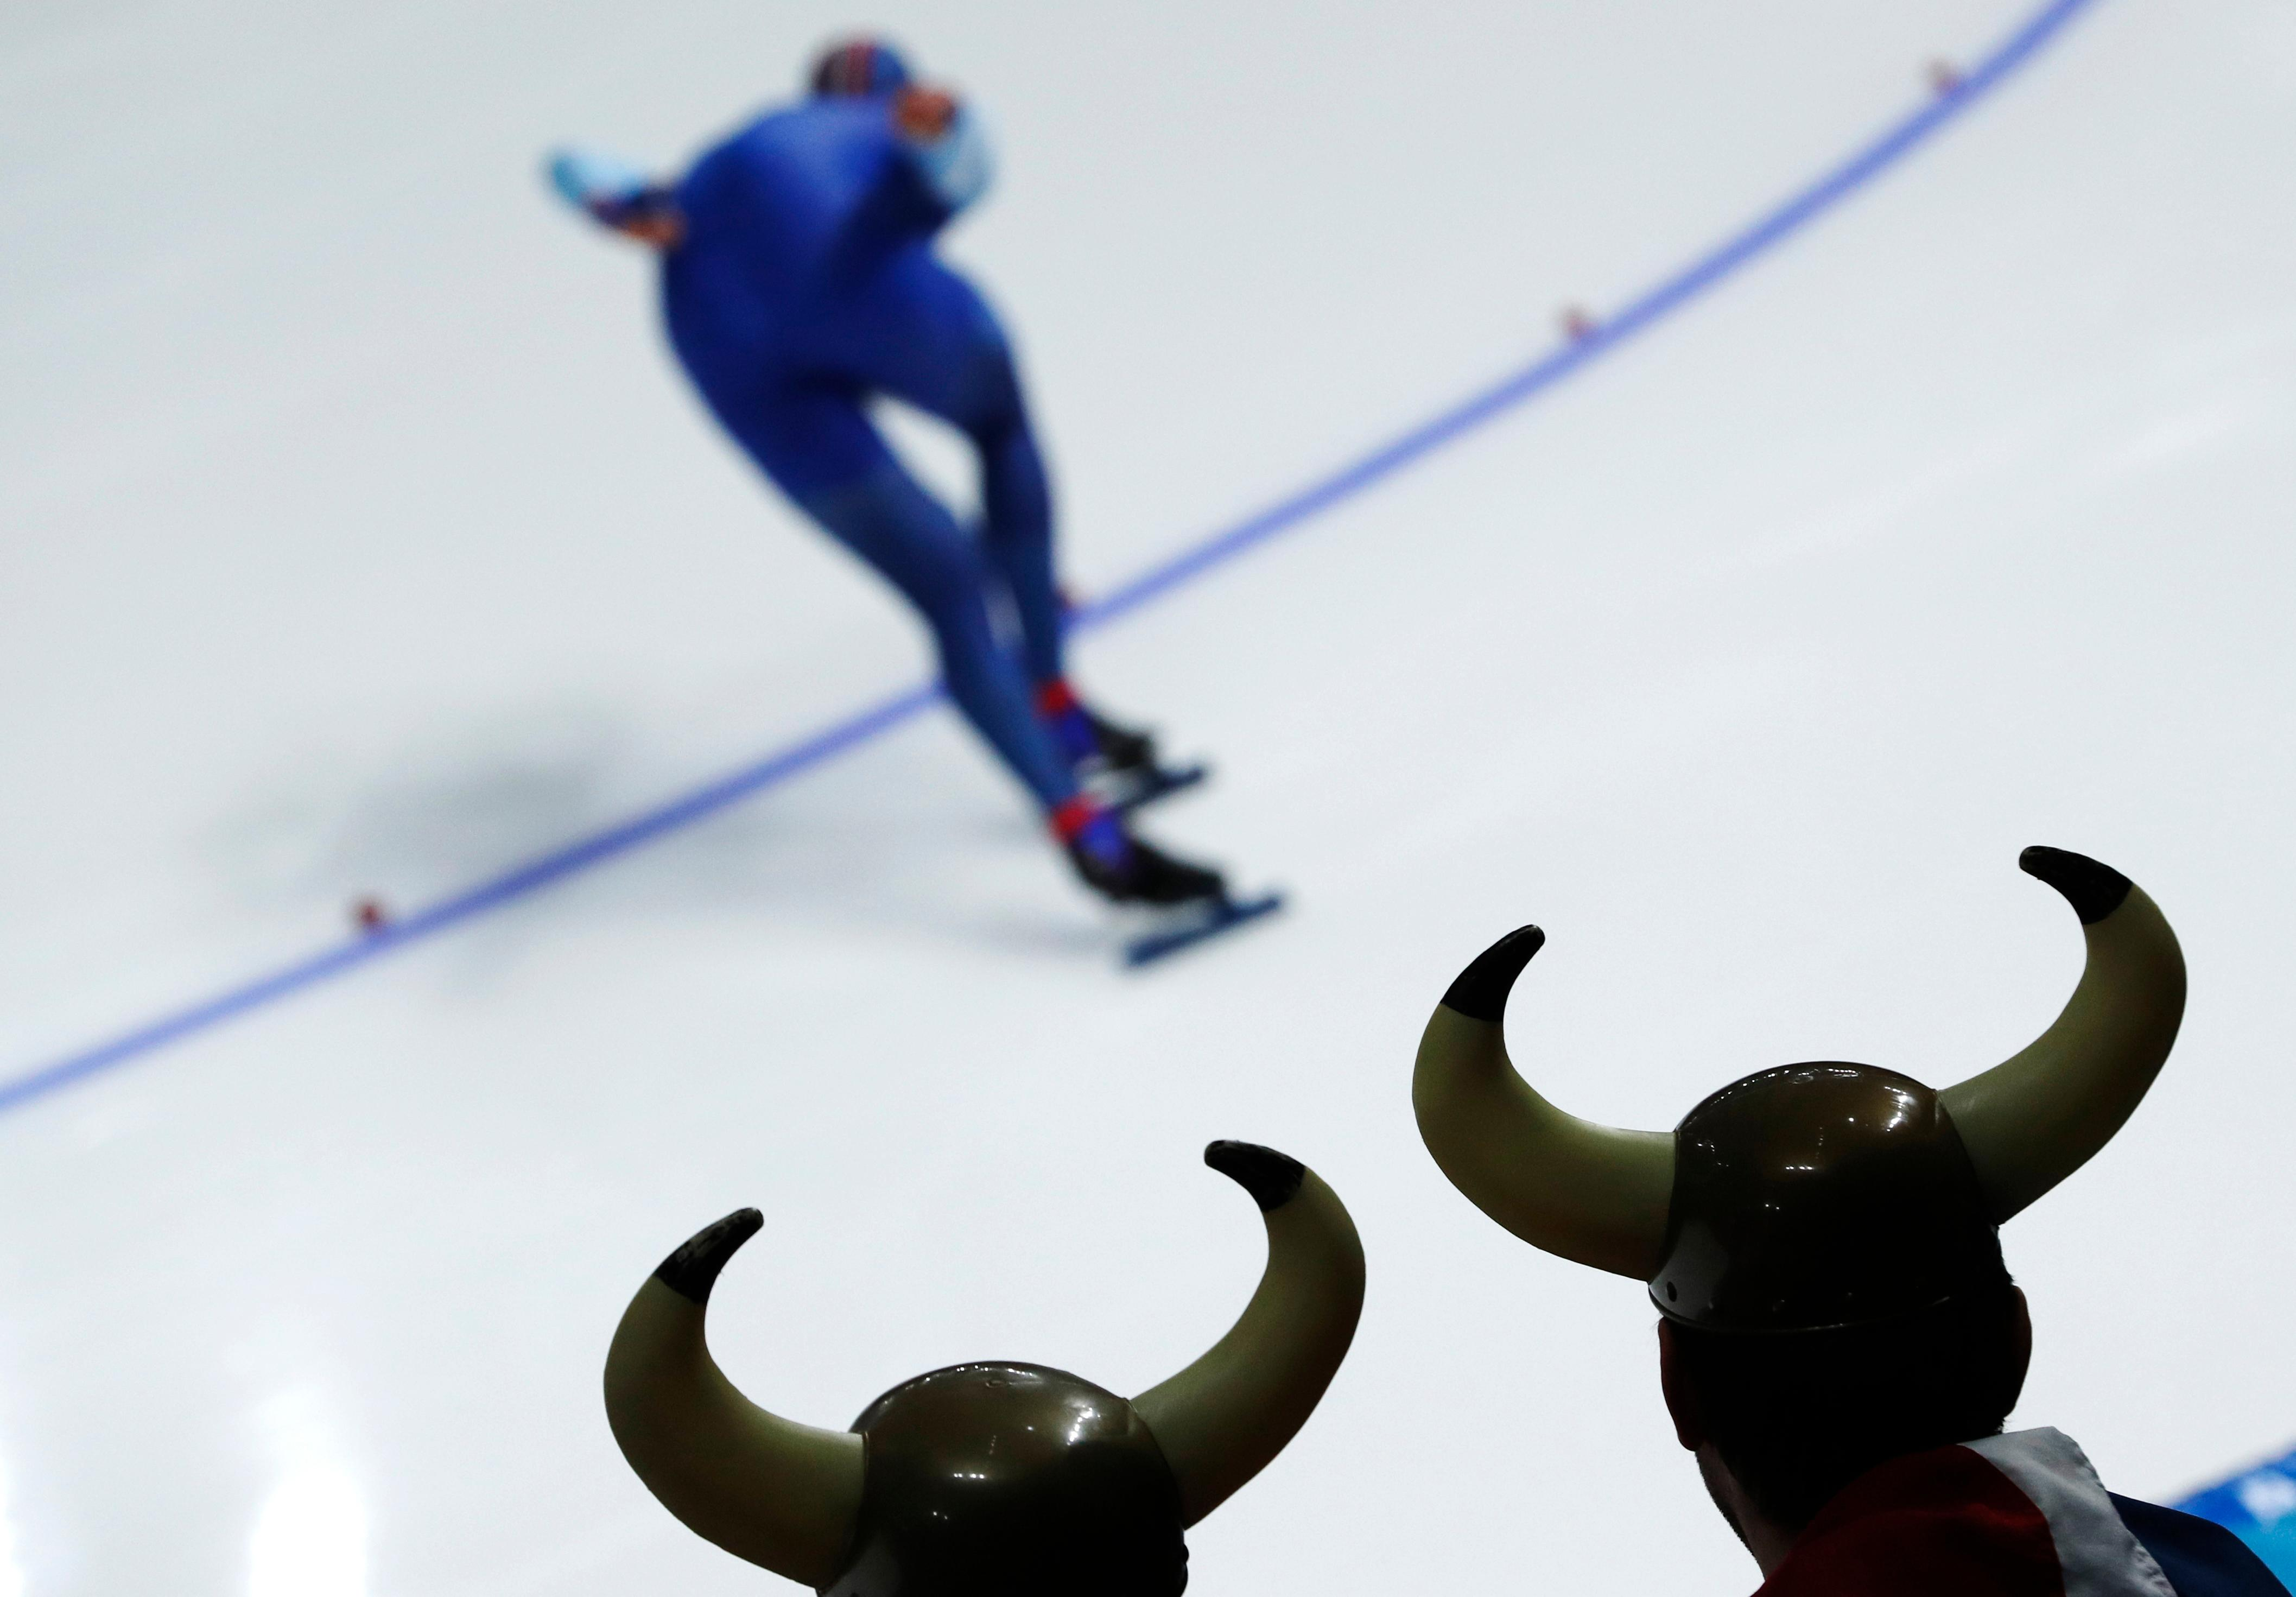 Two spectator dressed as Vikings watch as Havard Lorentzen of Norway competes during the men's 1,000 meters speedskating race at the Gangneung Oval at the 2018 Winter Olympics in Gangneung, South Korea, Friday, Feb. 23, 2018. (AP Photo/John Locher)